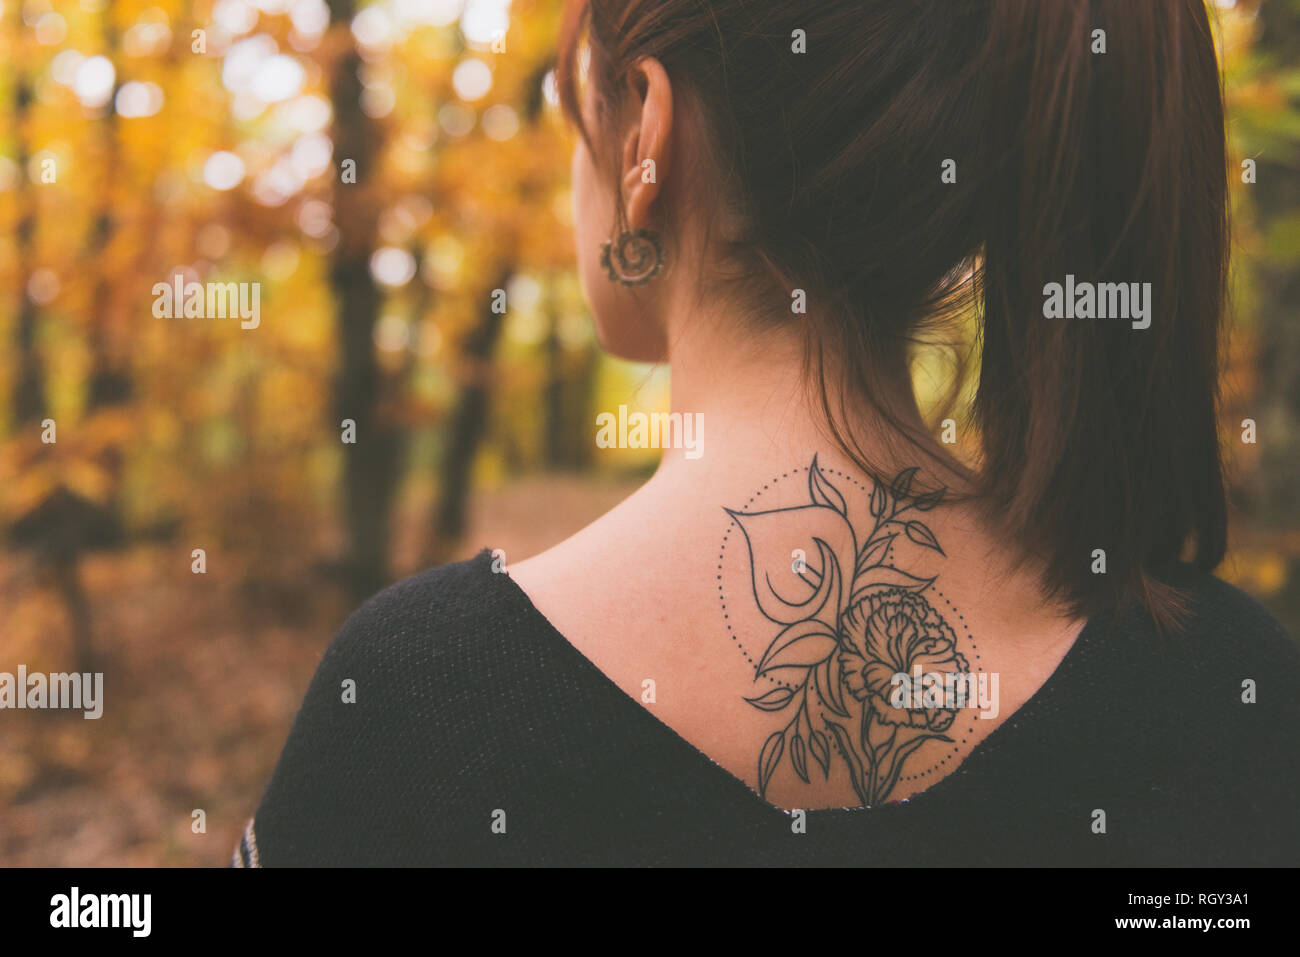 Tattoo on the back of a young girl with reddish hair dressed in a poncho in an autumnal forest - Stock Image